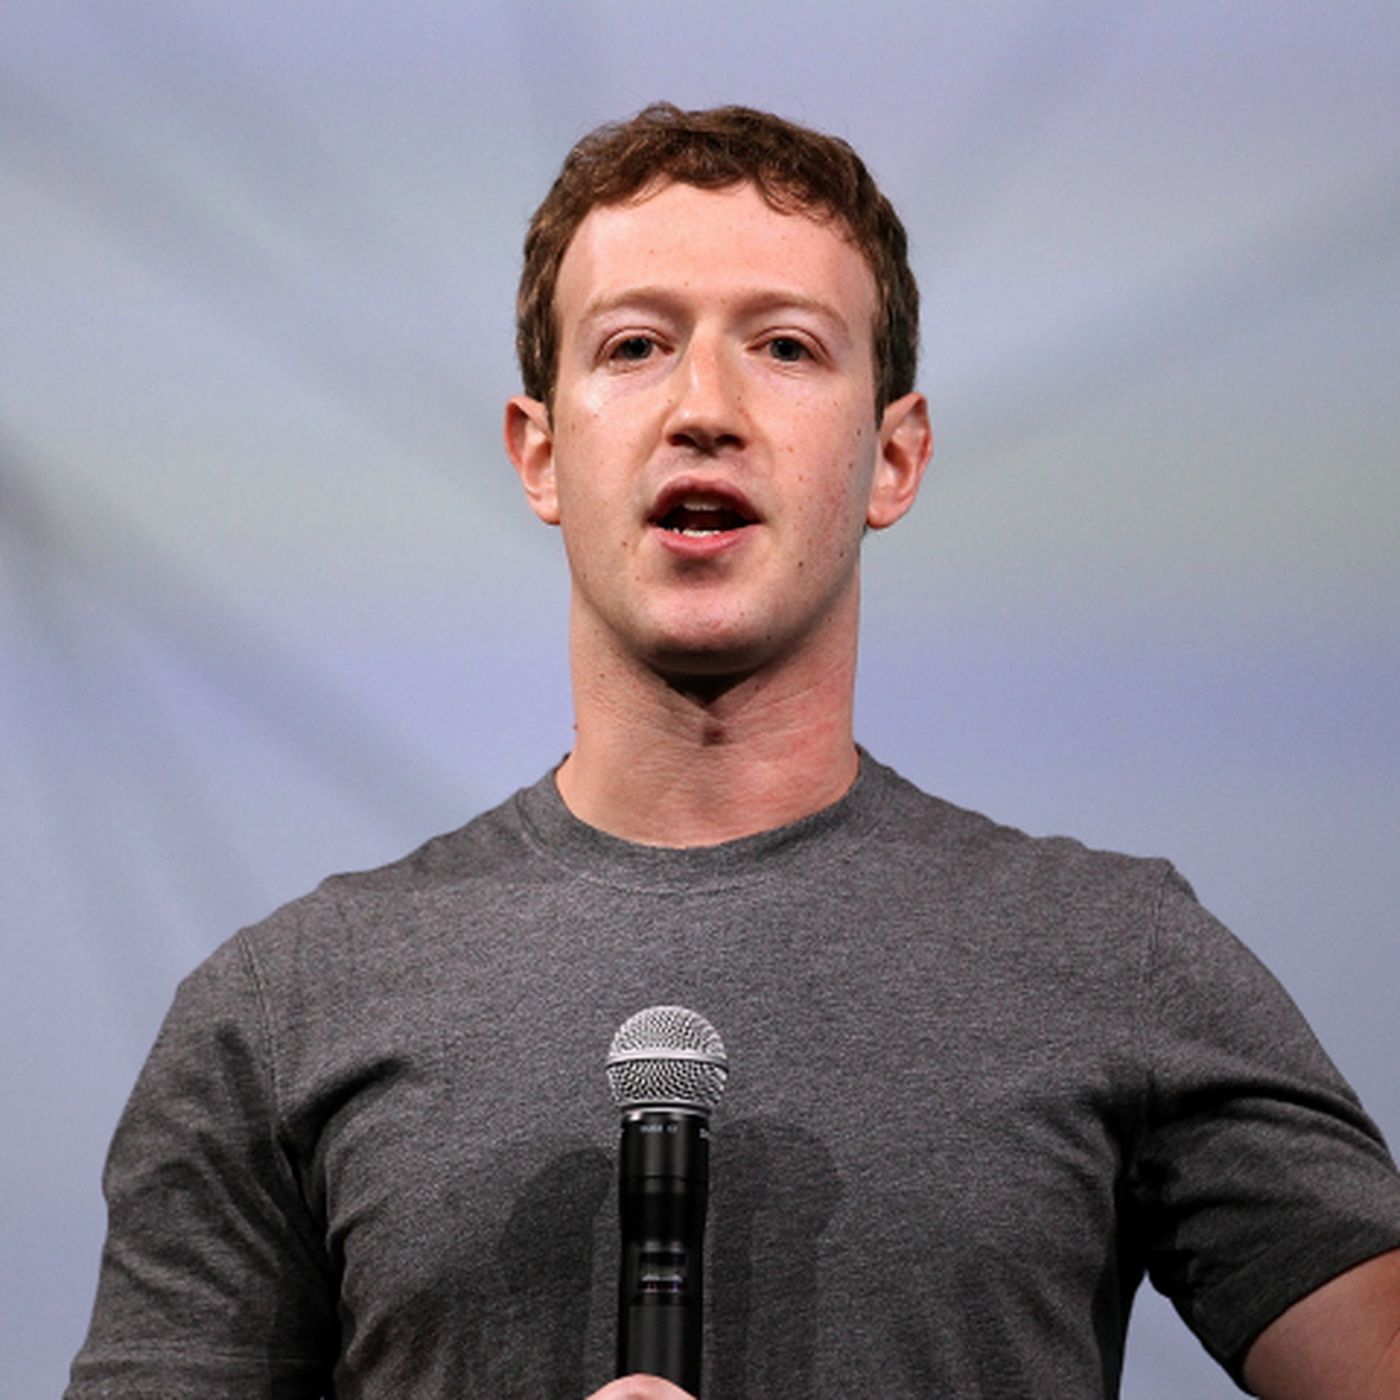 recode.net - Kurt Wagner - Mark Zuckerberg shares Facebook's secrets with all his employees, and almost none of it leaks